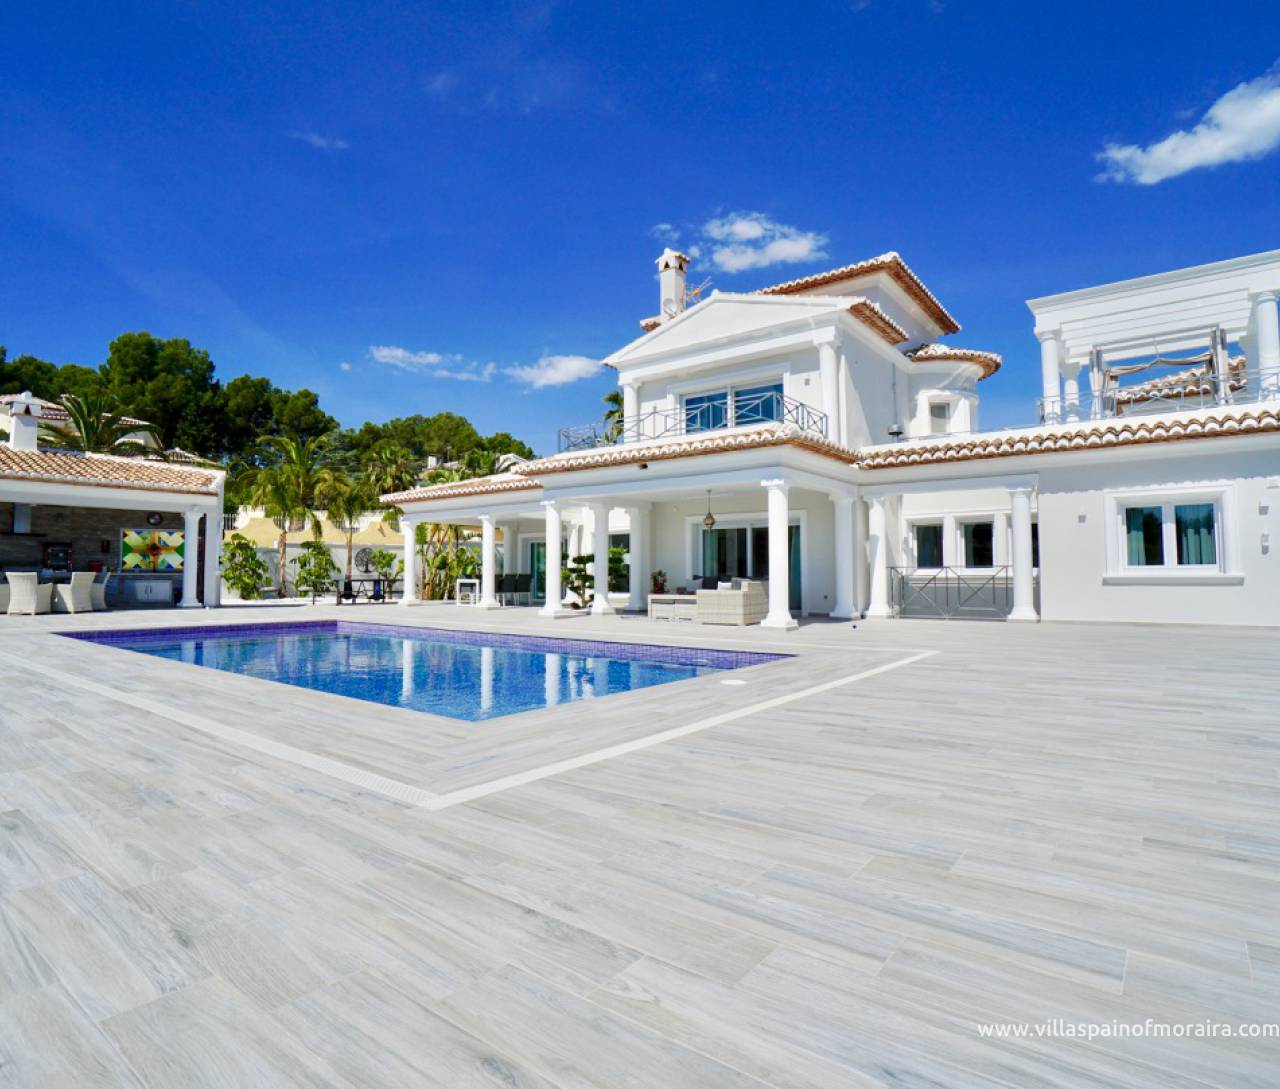 Luxury villa in Moraira close to town